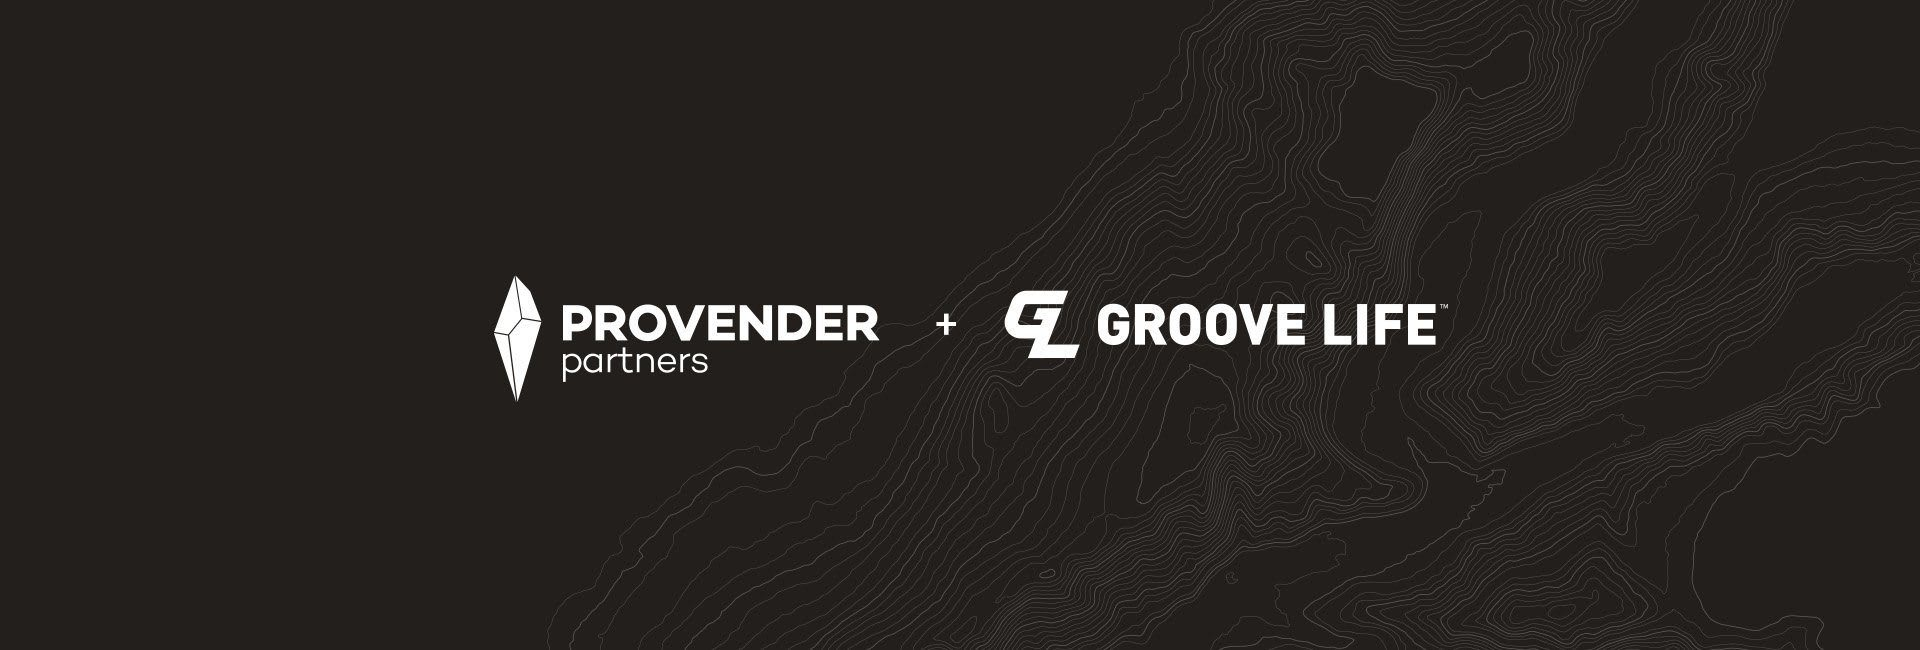 Provender Partners and Groove Life, overlaid on black background of grey topographical lines